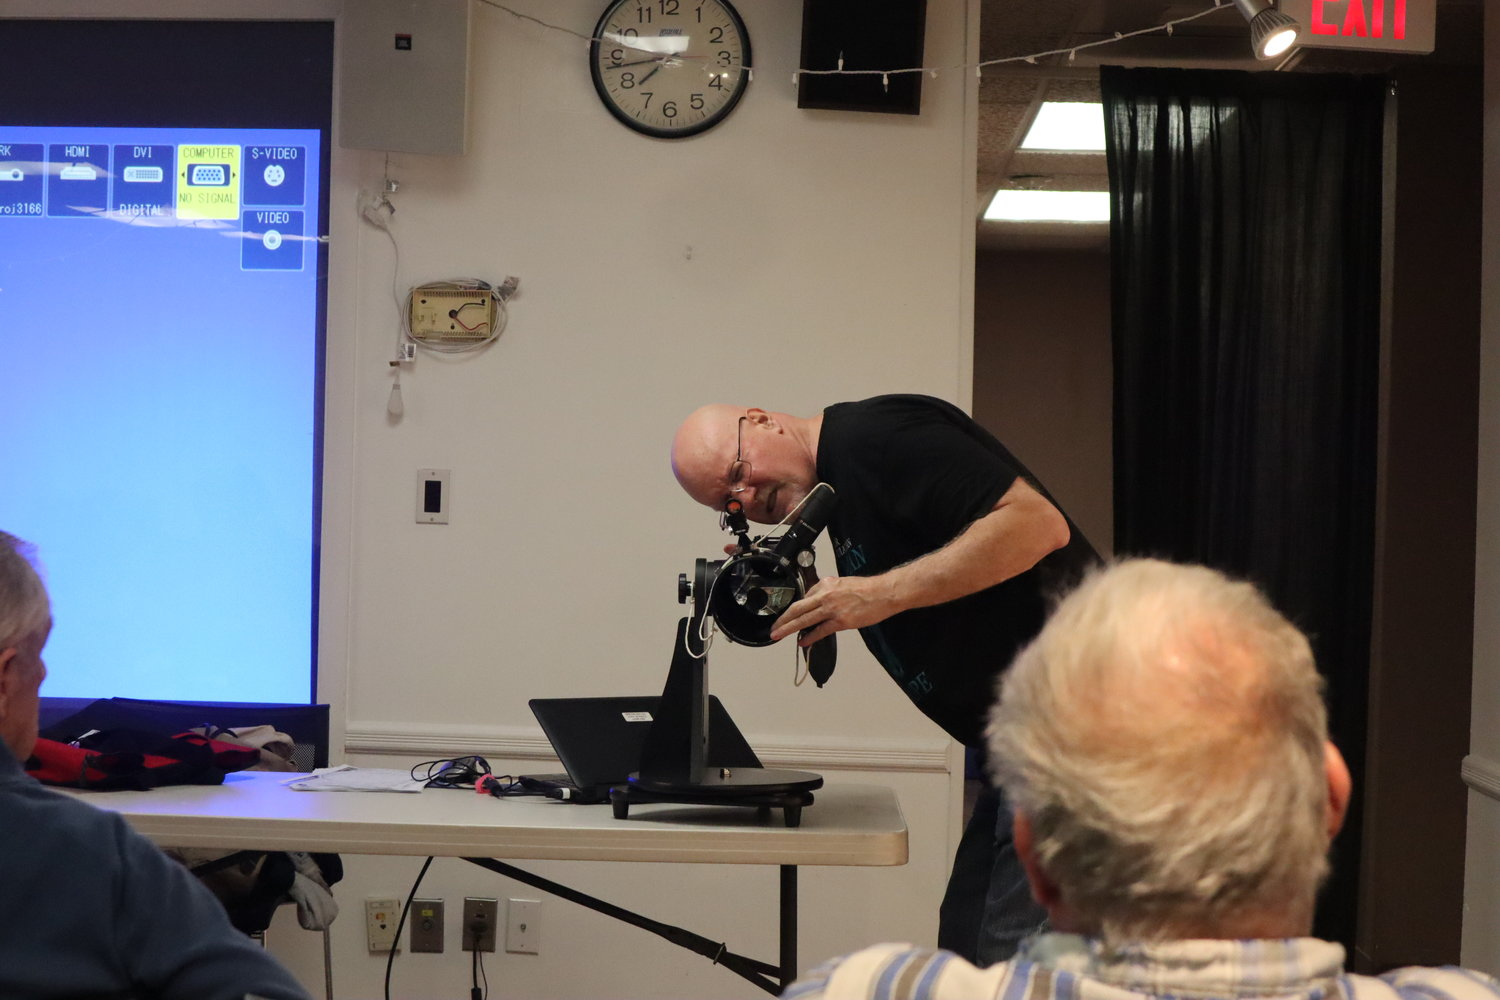 Tom Lynch, an astronomy enthusiast, helped bring the new equipment to the library. On April 15, he went over telescope basics.